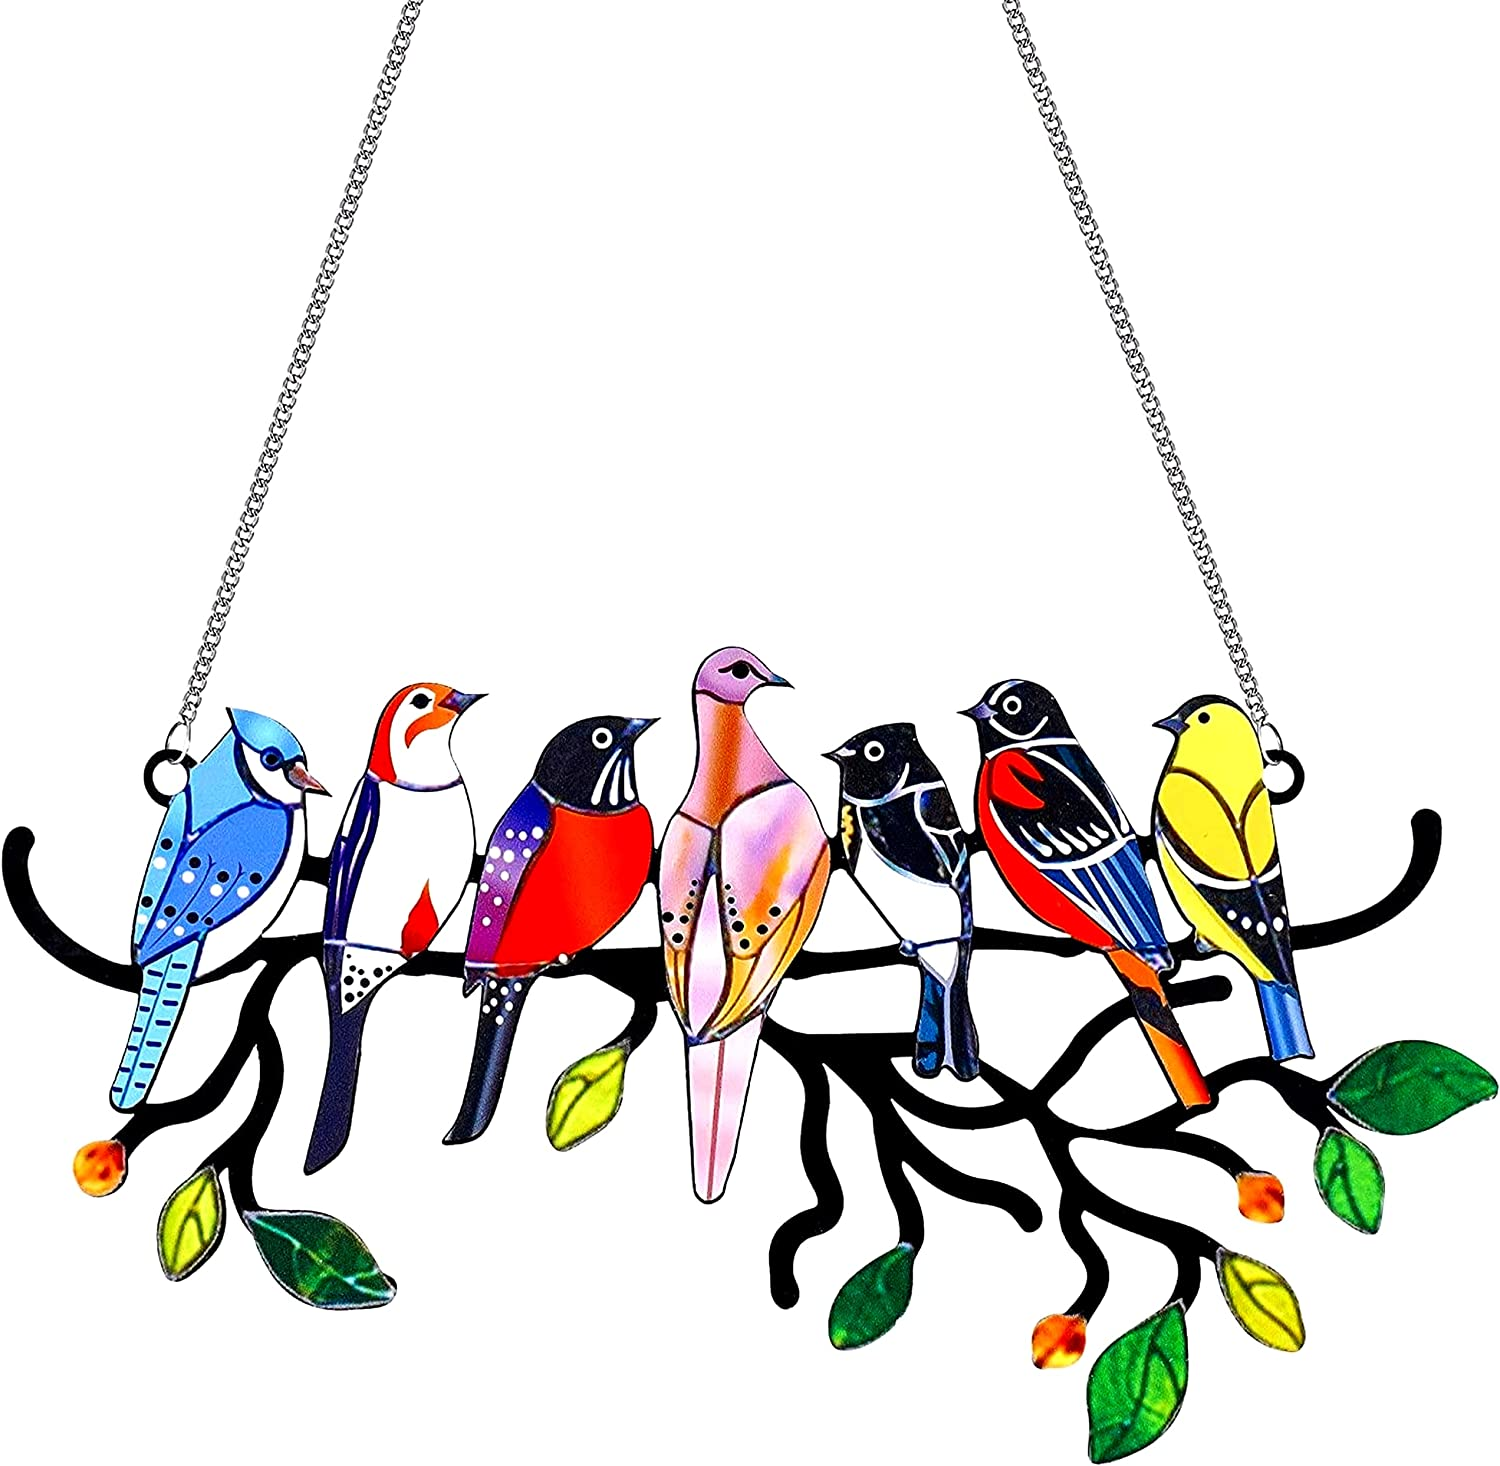 WENWELL Stained Metal Bird Glass Window Hangings,Cardinal Suncatcher Home Ornaments Decorations,Multicolor Birds on Branches Sculptures Pendant for Patio Yard Decor,Gifts for Bird Lovers